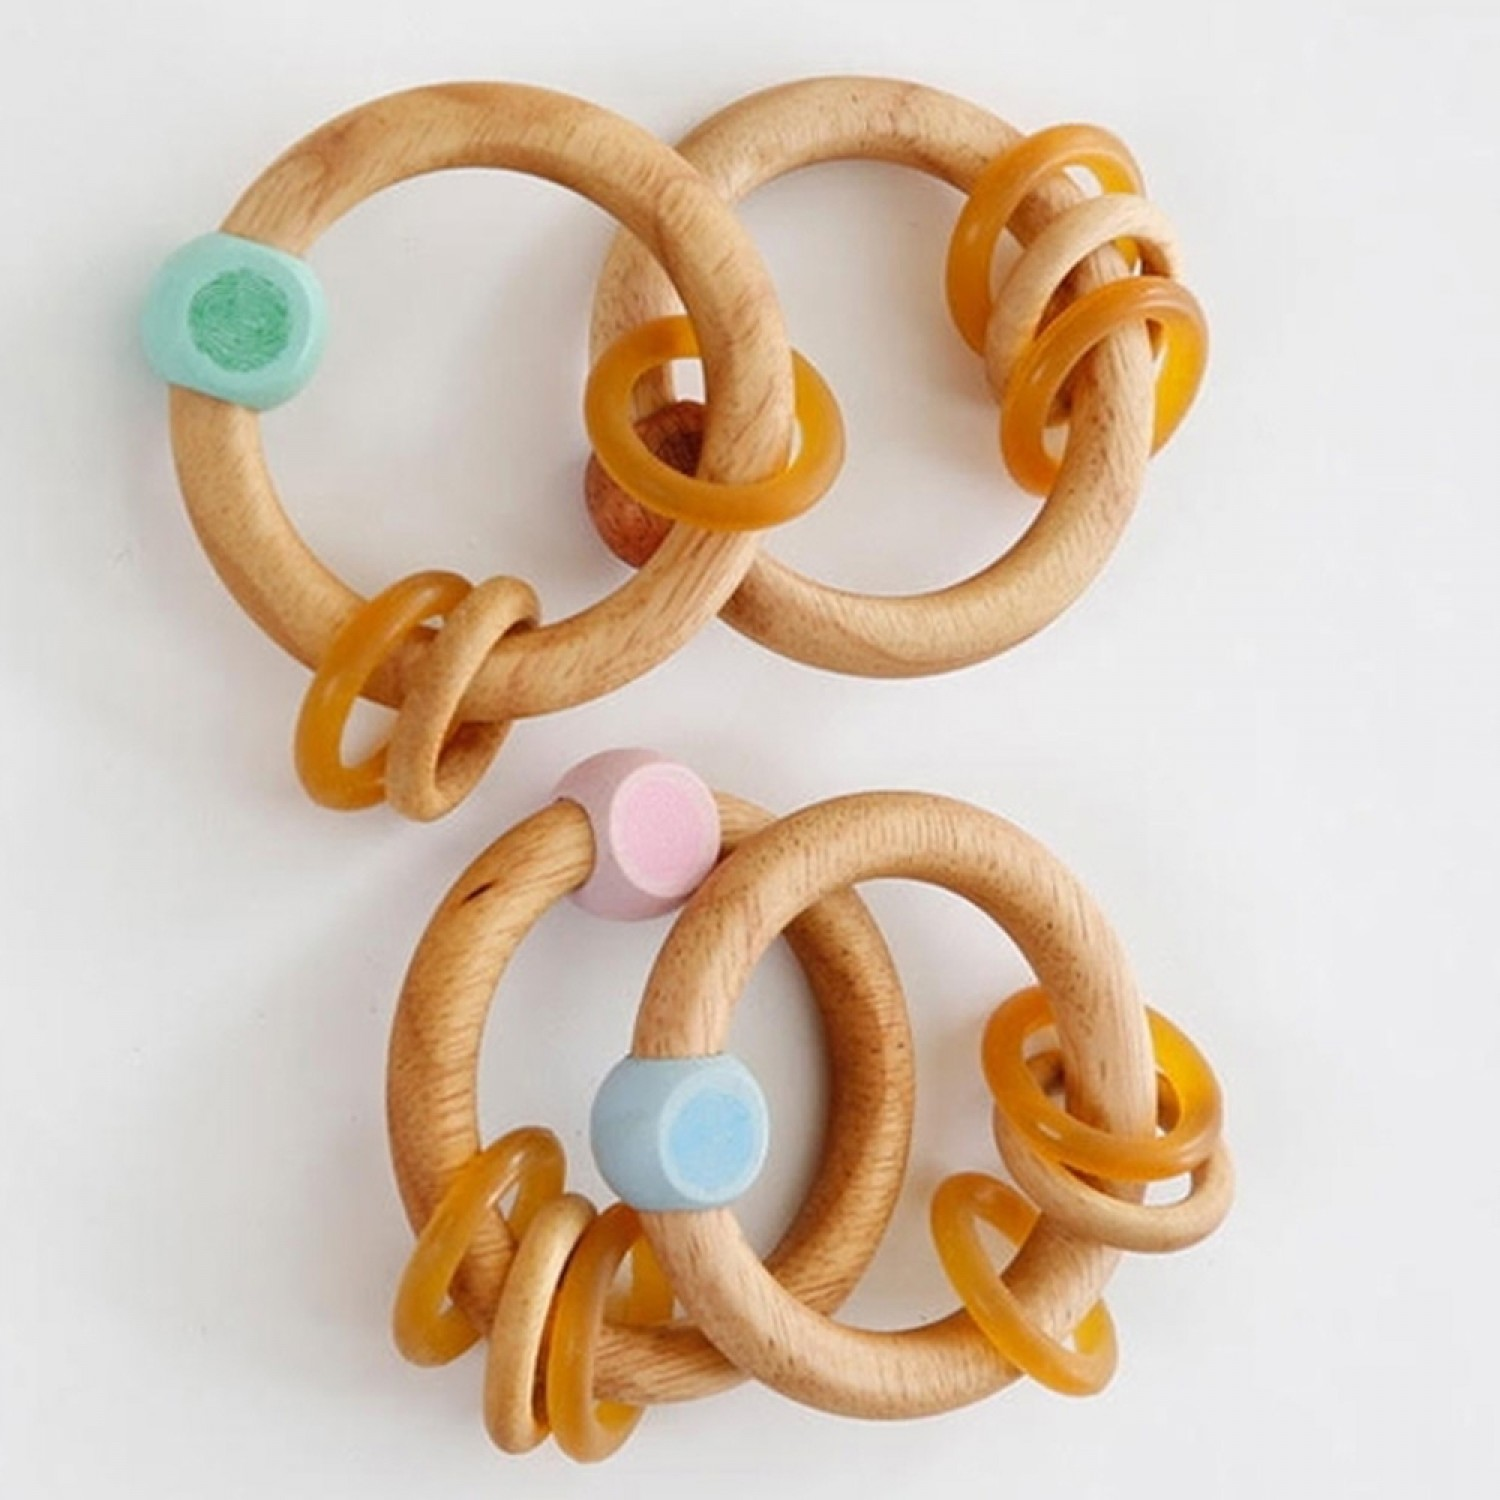 Hevea Rubberwood Rattle - Eco Teething Ring